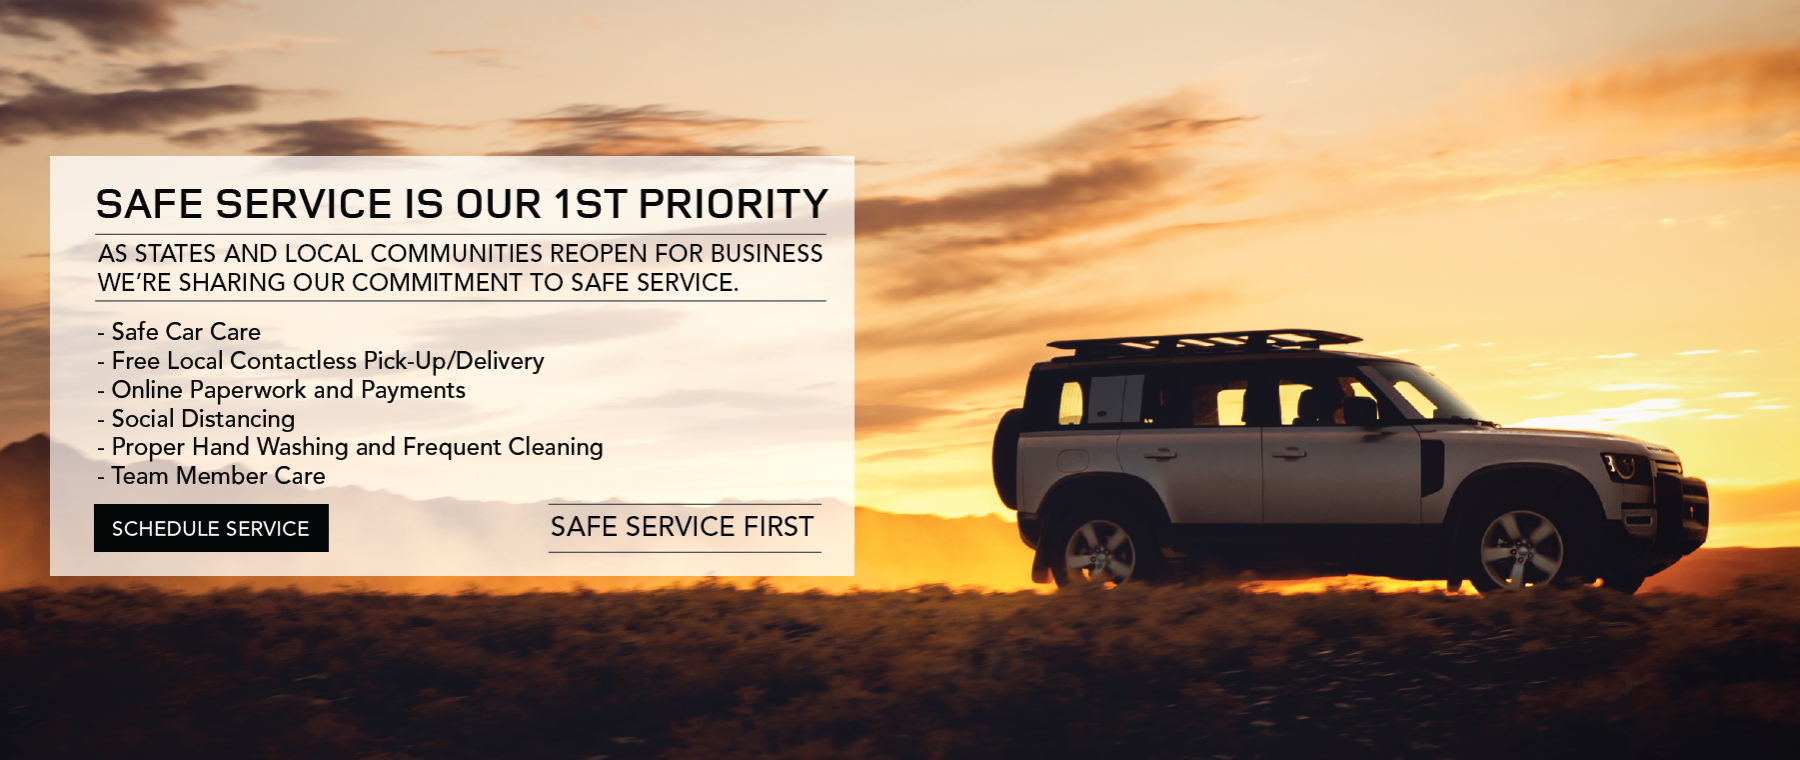 Silver 2020 Land Rover Defender on road with sunset. Safe service first. Click to schedule service.